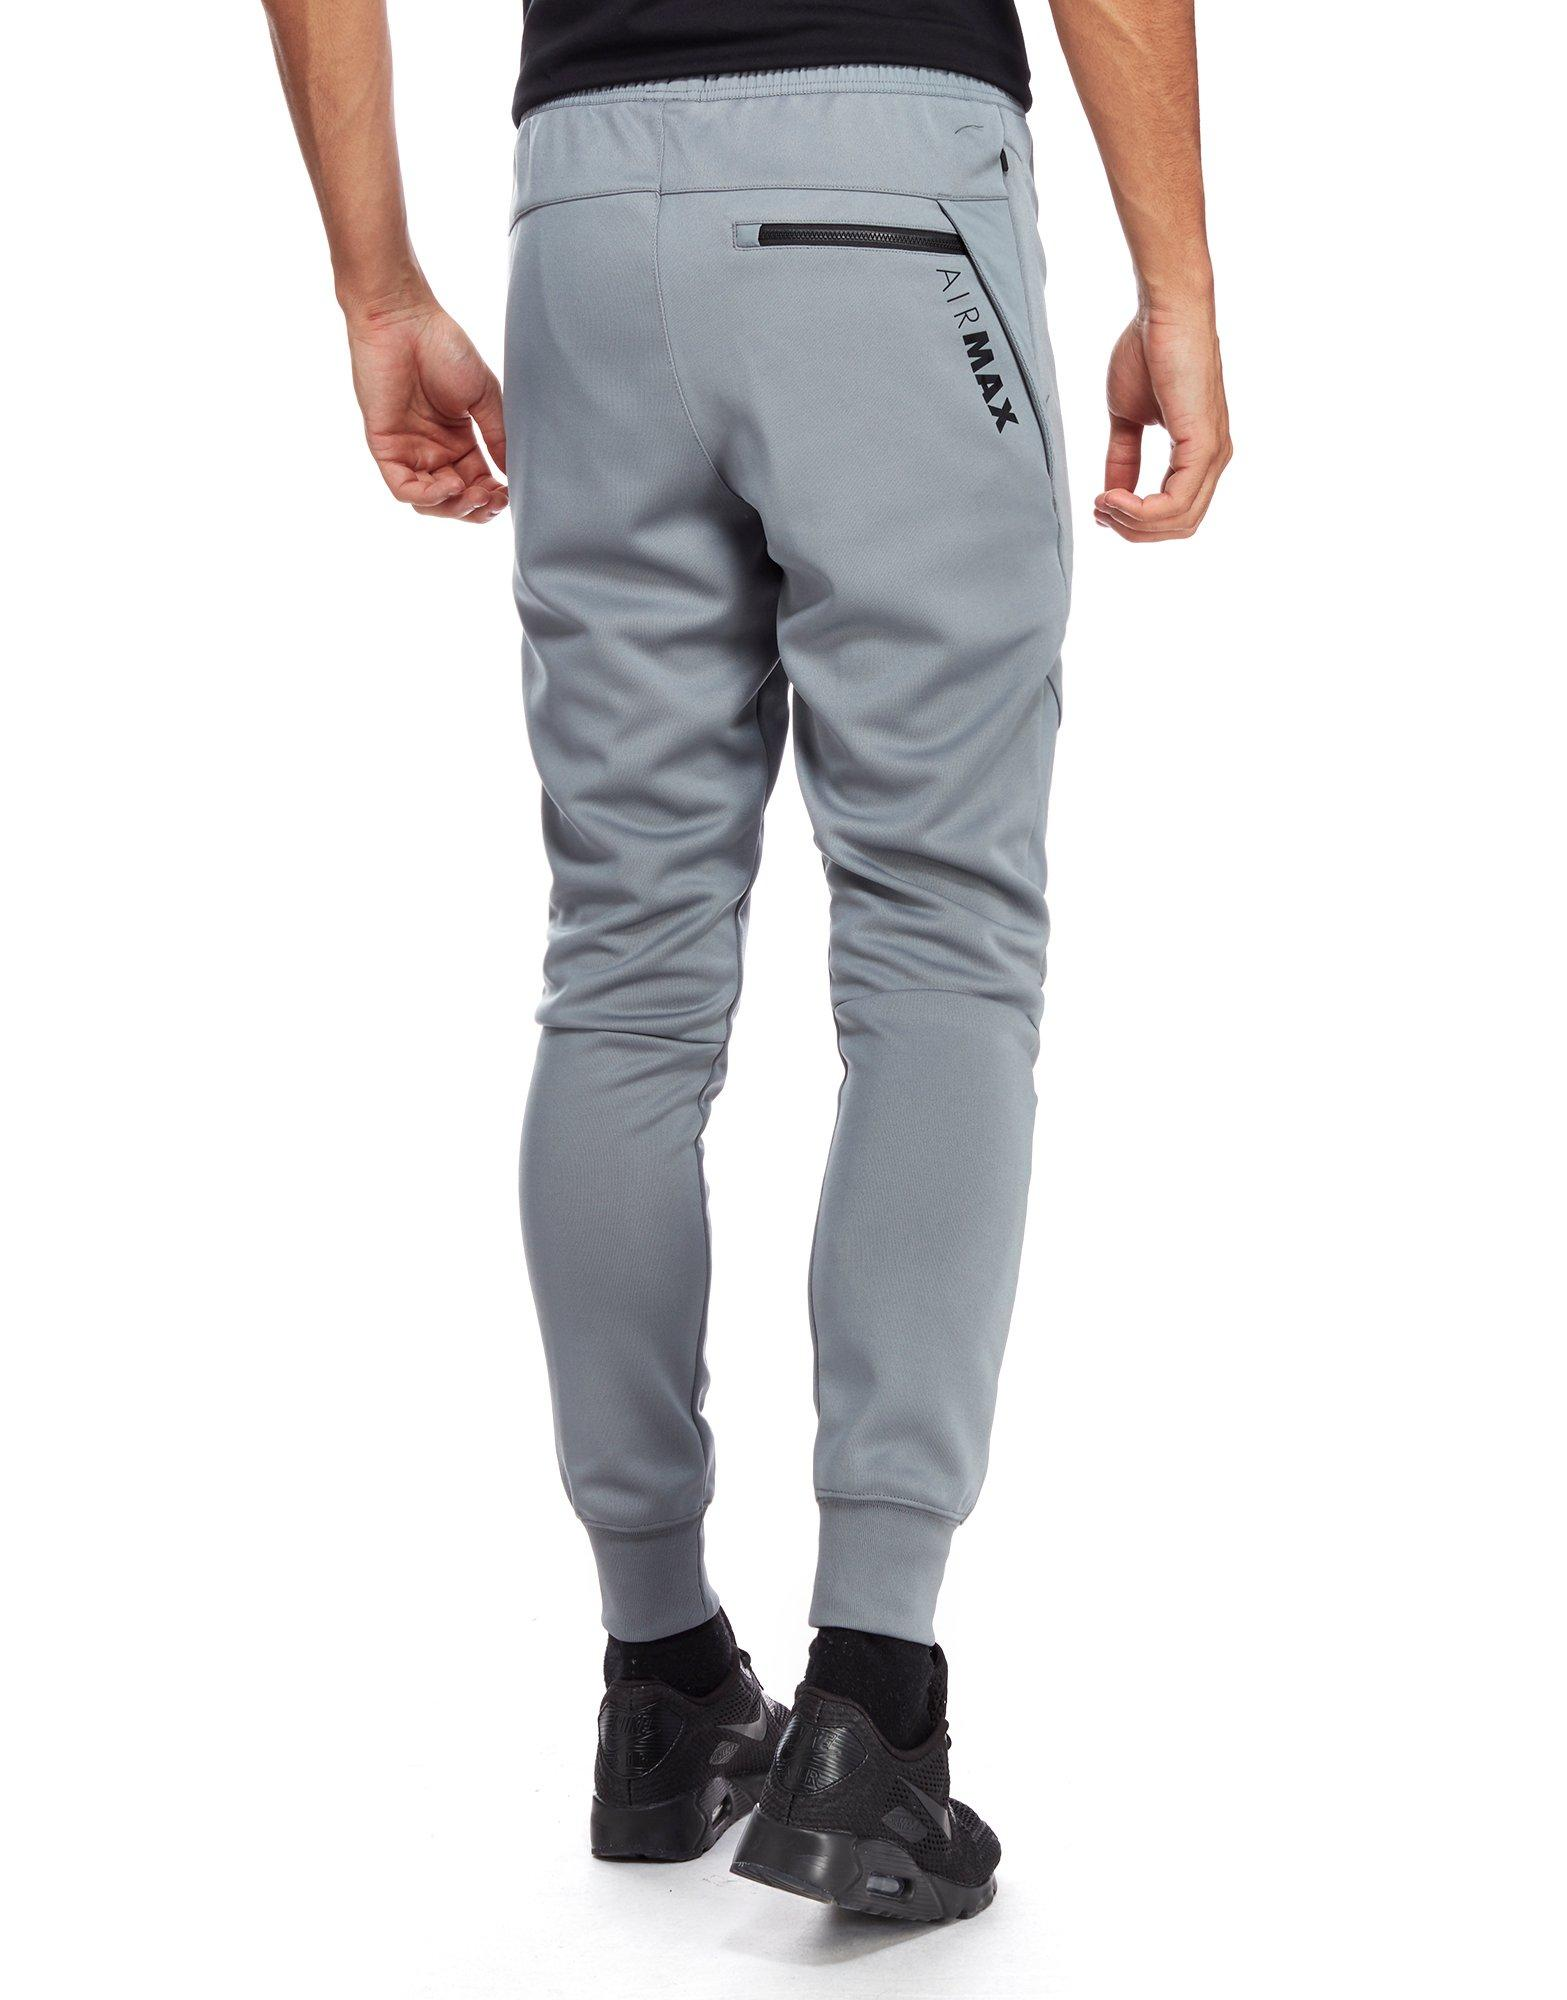 Excellent Nike Air Max 90 Jogger Pants Nike Lunarlon Running Online